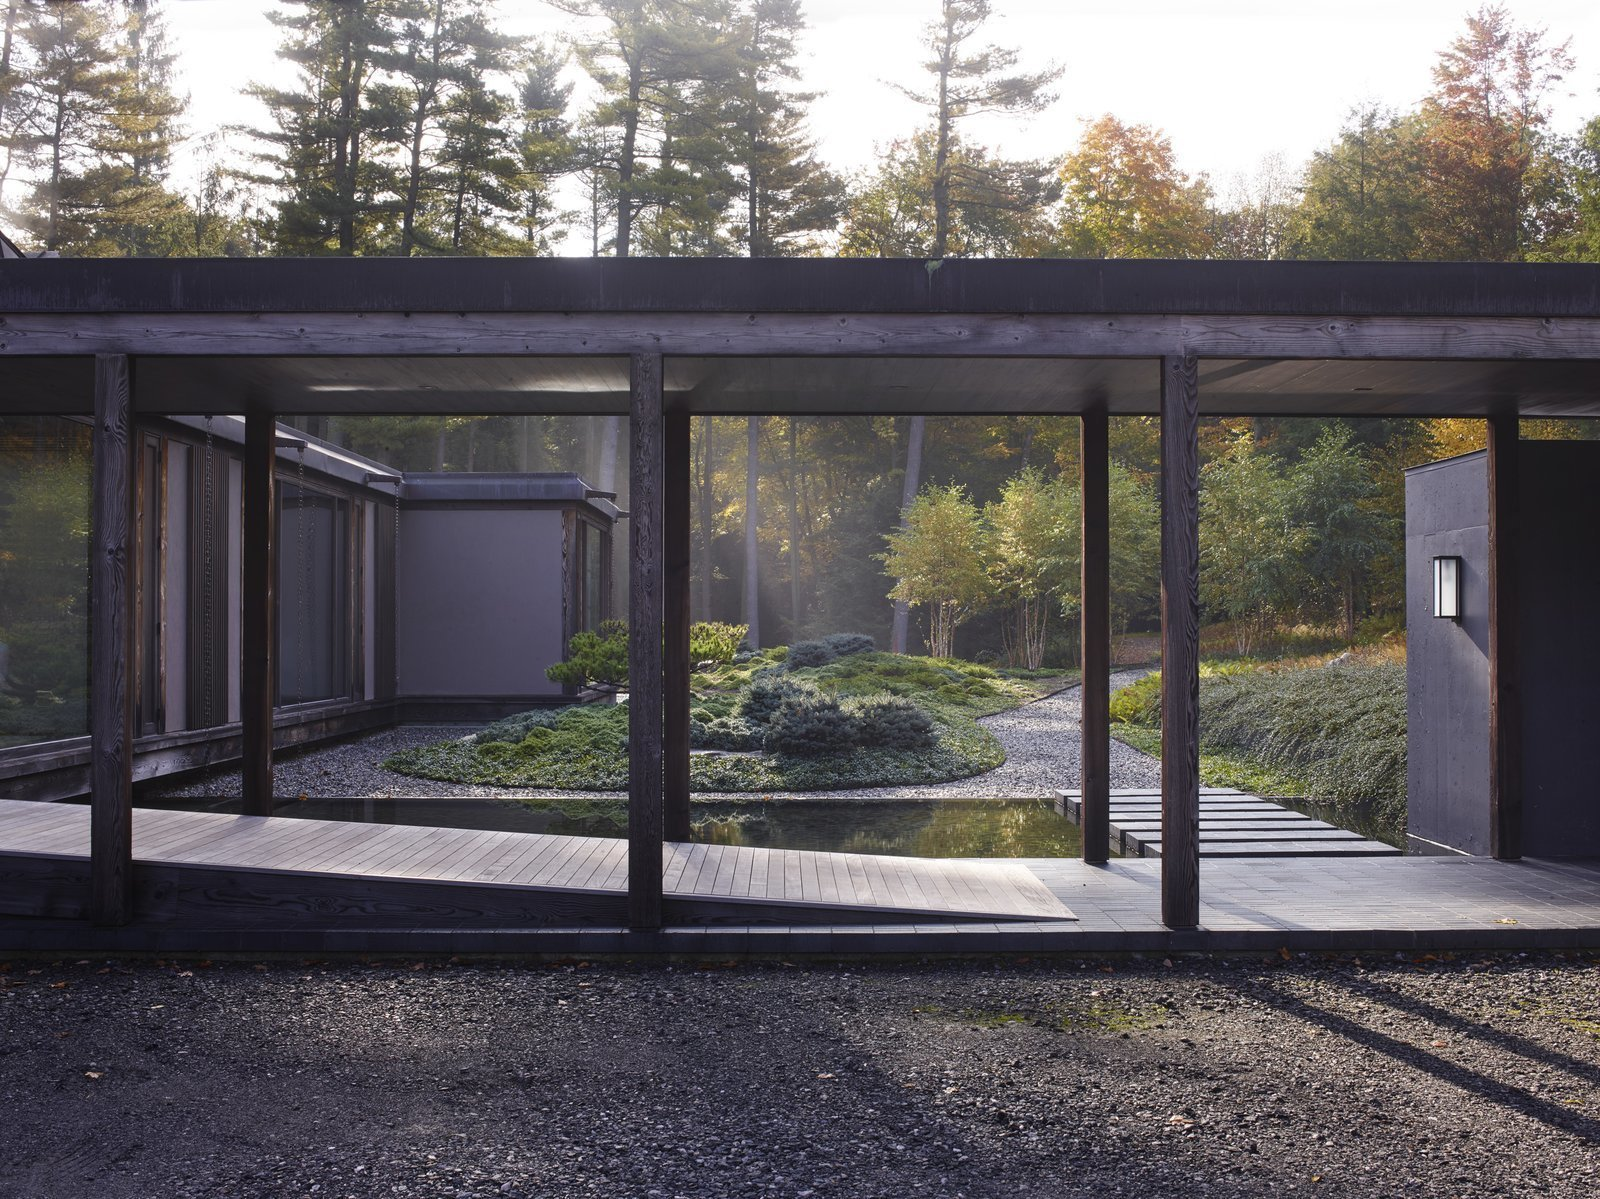 Outdoor, Garden, Hardscapes, Grass, Walkways, Trees, Gardens, Shrubs, and Wood Patio, Porch, Deck Fashion designer Josie and her husband Ken Natori are big fans of traditional Japanese architecture, so when Brooklyn-based practice Tsao & McKown Architects designed their home in Pound Ridge, New York, they used a heavy, exposed-timber structure, and included Japanese-style gardens and landscaping.  Best Photos from 10 Zen Homes That Champion Japanese Design